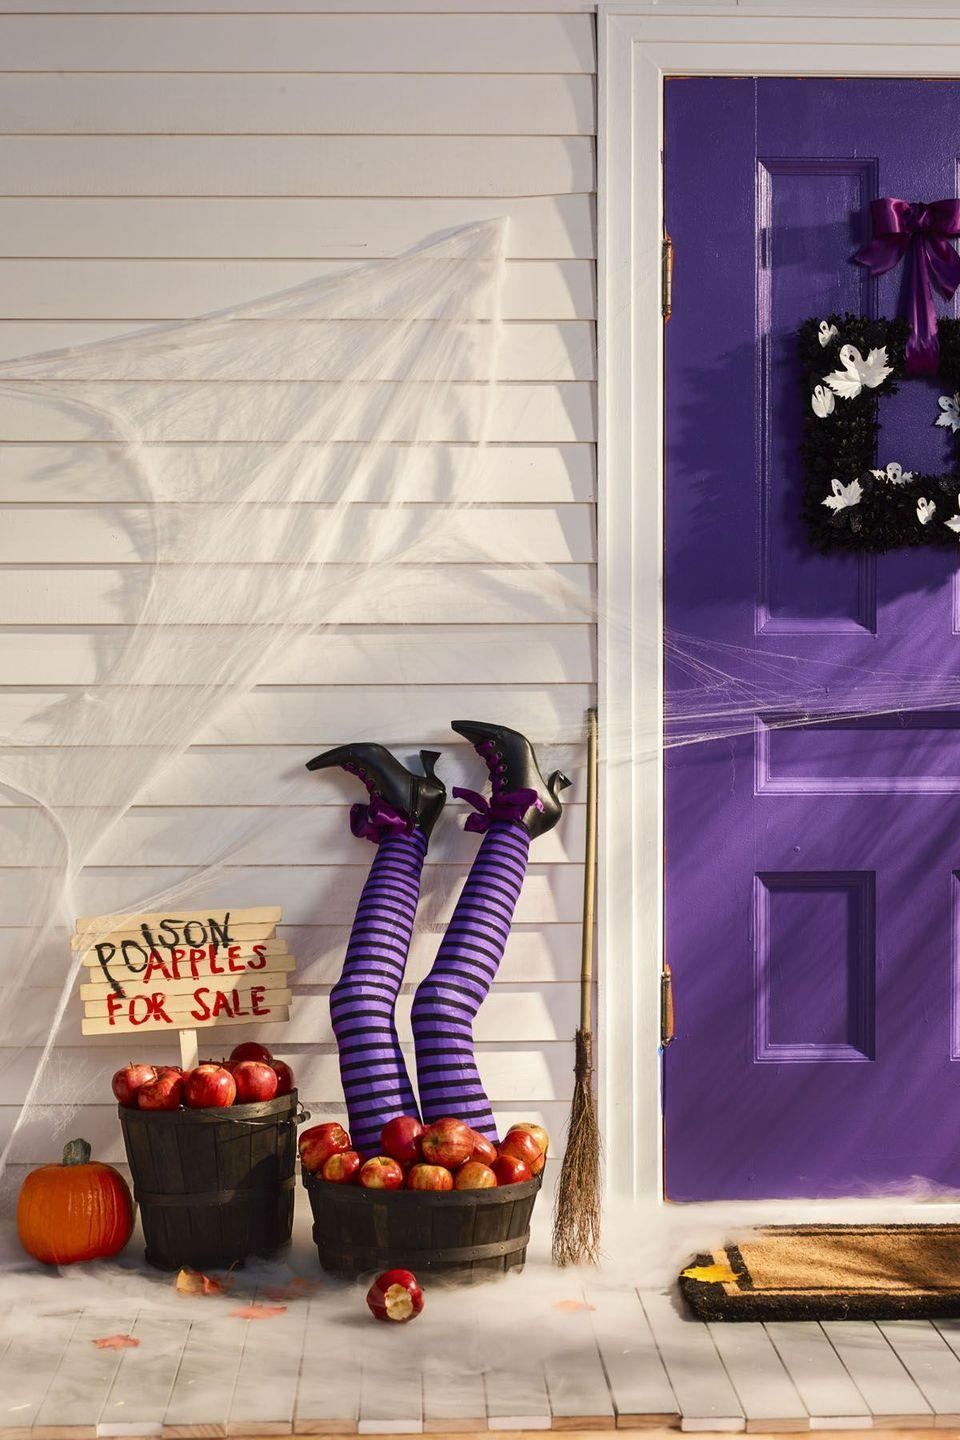 """<p>Flank your front door with apple barrels, then push in pool noodles that are outfitted in striped stockings and pointy heels for a bewitching outdoor decoration.</p><p>1. Cut two pool noodles to leg size (about 30"""" tall).</p><p>2. To make knees, draw a 3"""" half-circle in middle of each leg and cut the shape out. Pull edges together and secure with duct tape.</p><p>3. Tape quilt batting around pool noodles, adding extra layers to hip and thigh areas and an almond shape where it bends to complete knee. Use more tape to smooth out form.</p><p>4. Pull tights over legs. Stuff witch boots with batting and secure to legs by tying laces tightly.</p><p>5. To make sign, hot-glue six paint stirrers together to form a jagged rectangle, then hot-glue another stirrer to the back as a signpost. Paint on a phrase like """"Poison Apples for Sale.""""</p>"""